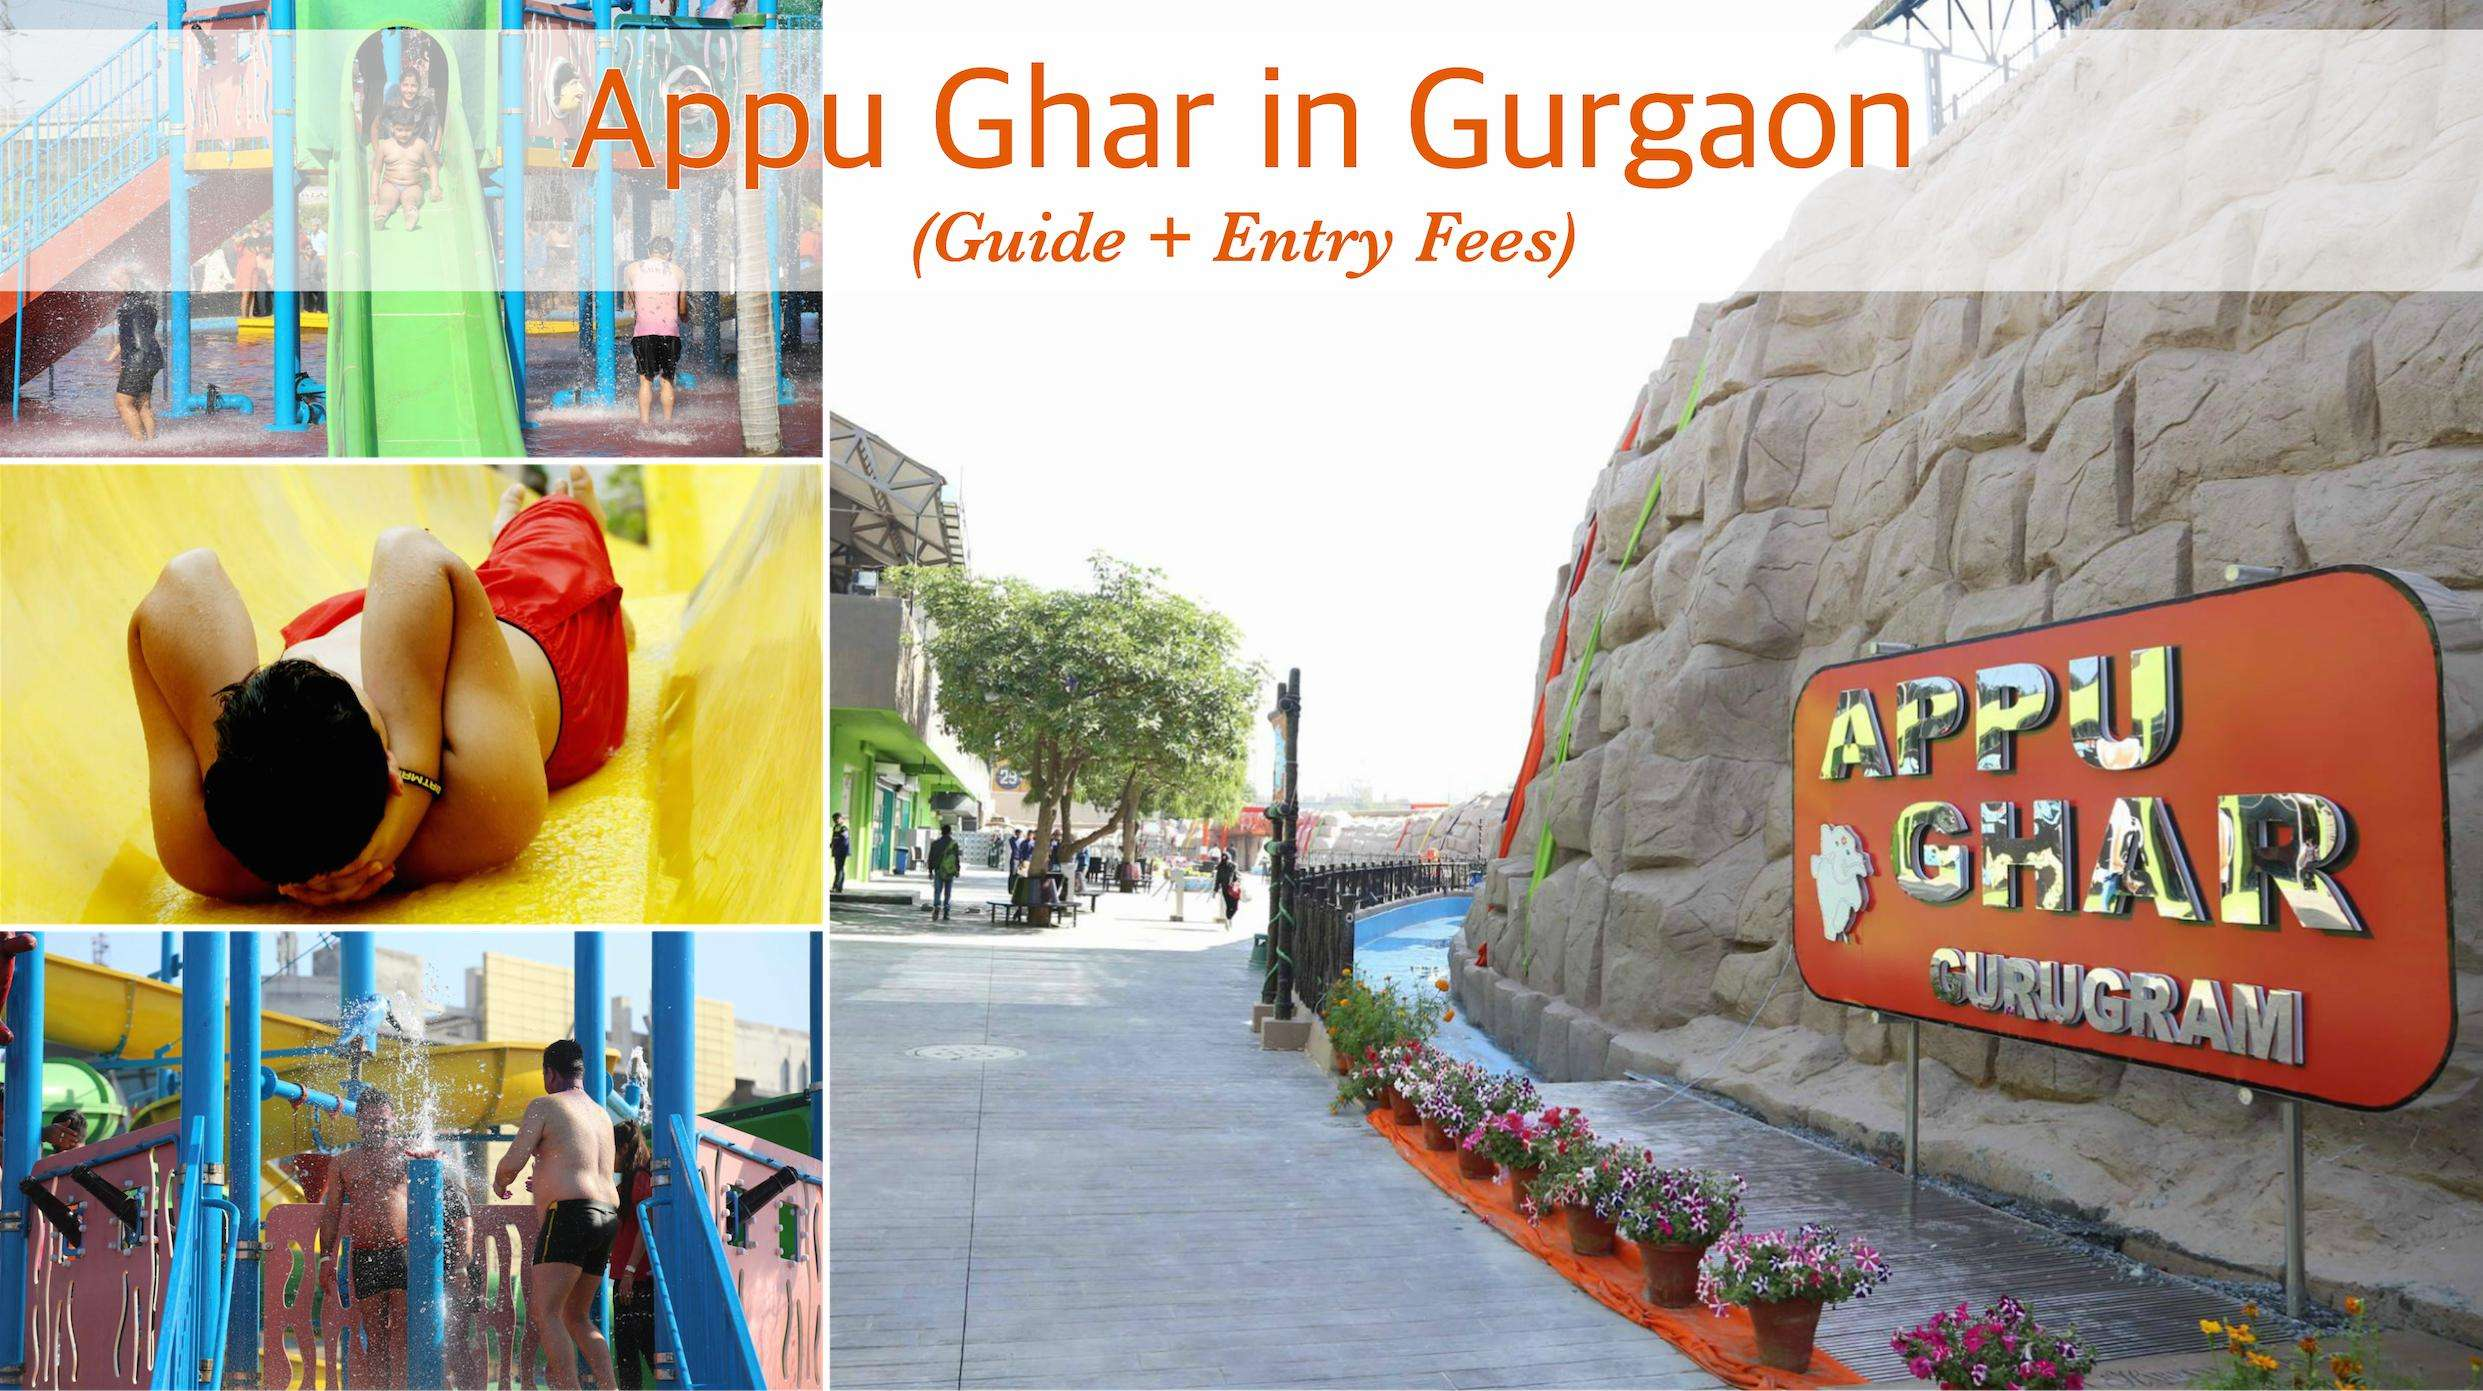 Appu-ghar-gurgaon.